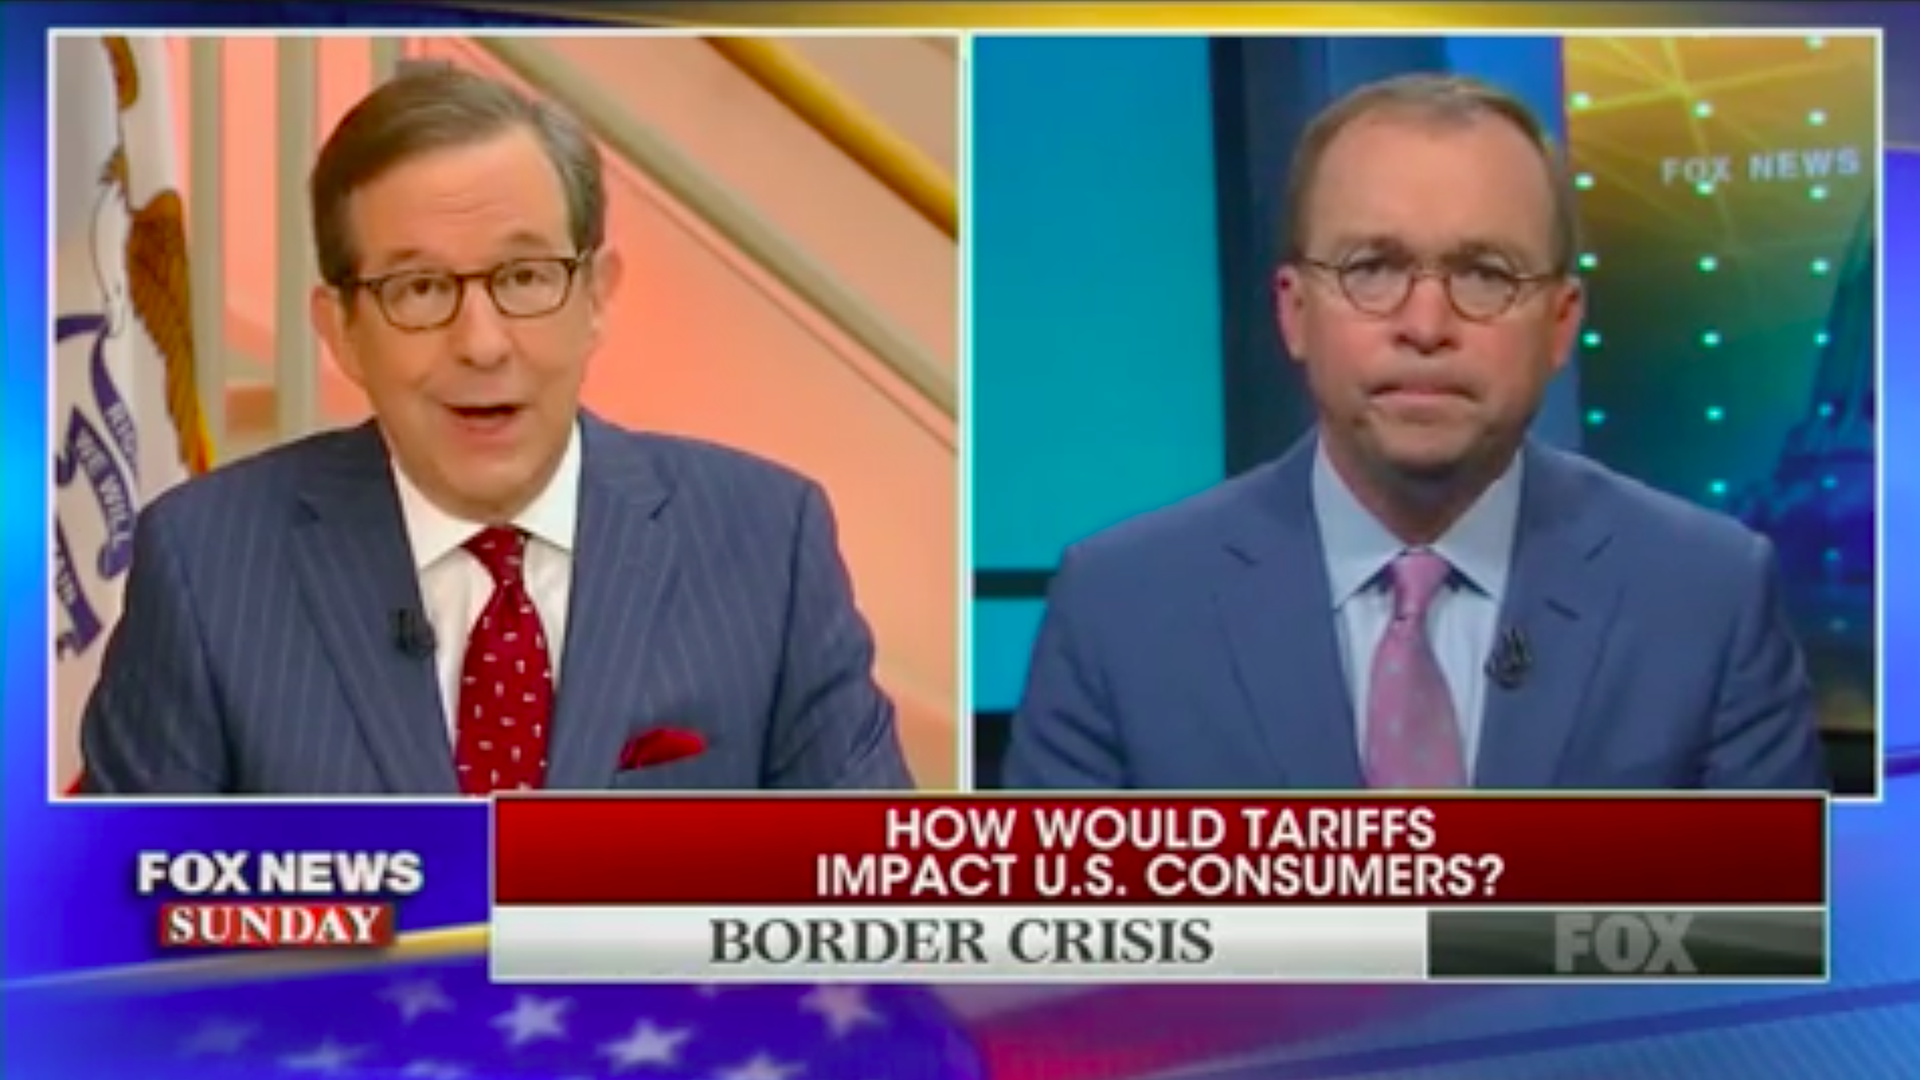 Mexico trade war: Mick Mulvaney says Trump is